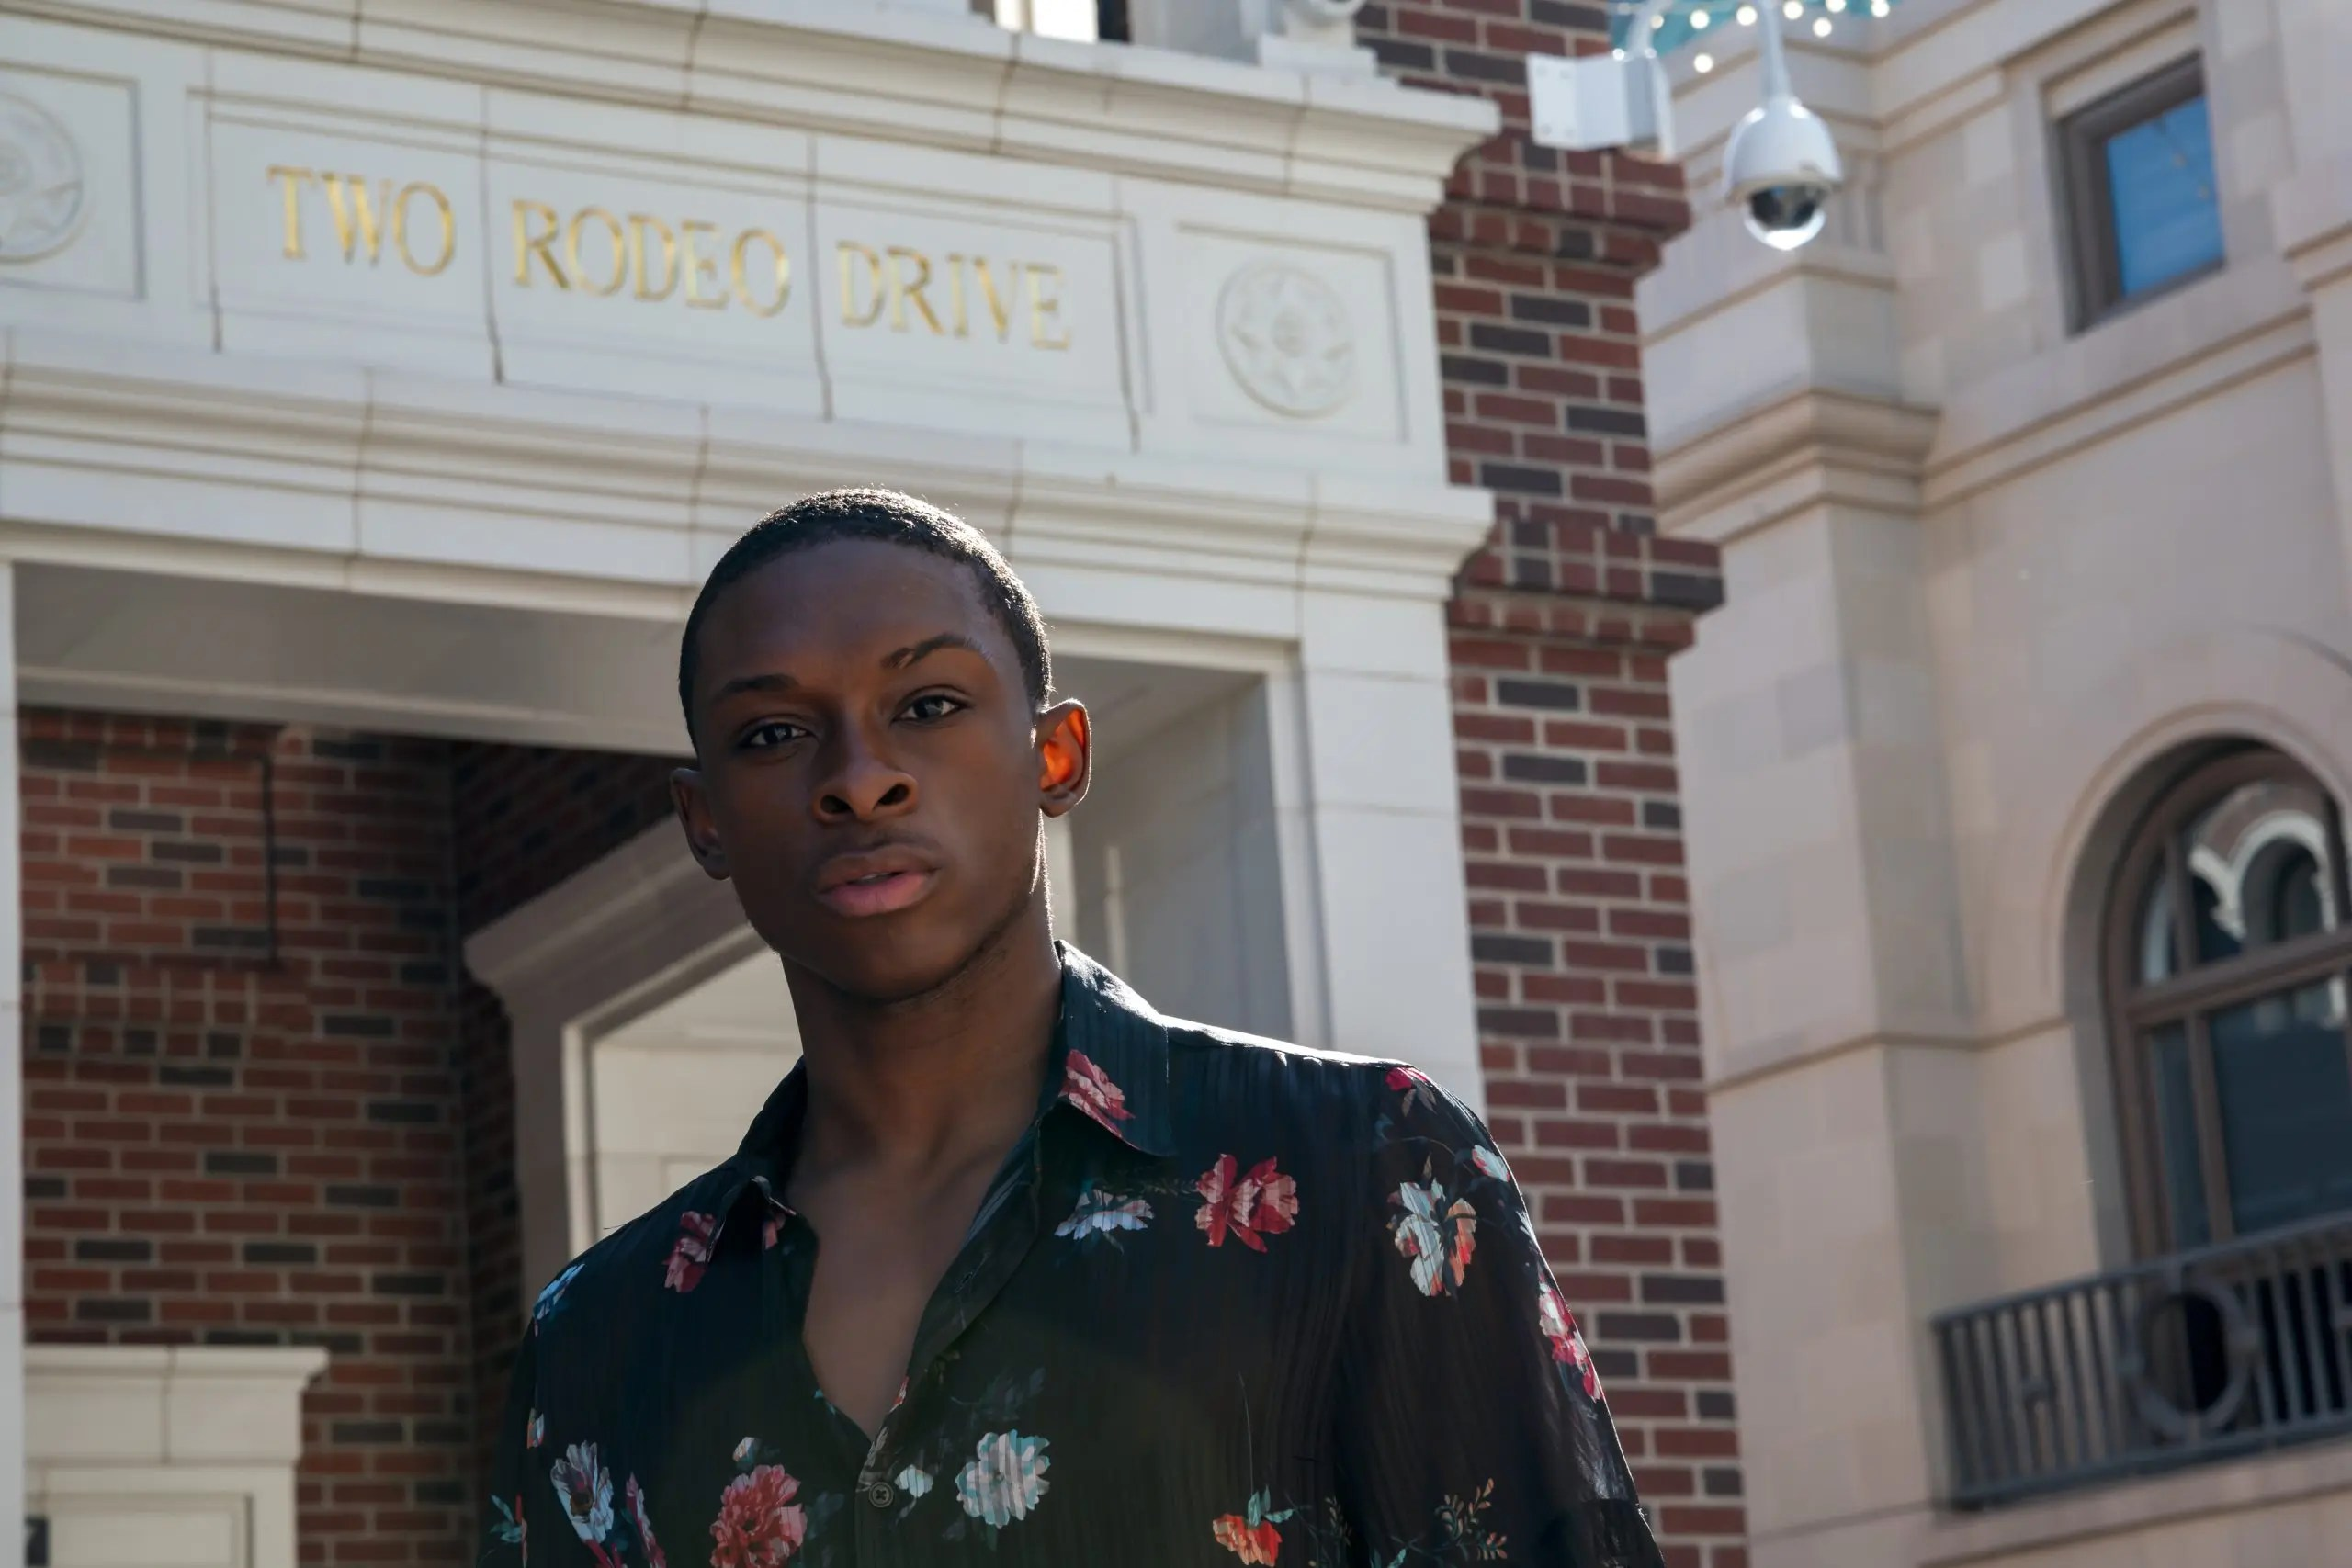 Black male model posing in front of Rodeo Drive in Beverly Hills, California wearing a black floral button-down shirt.